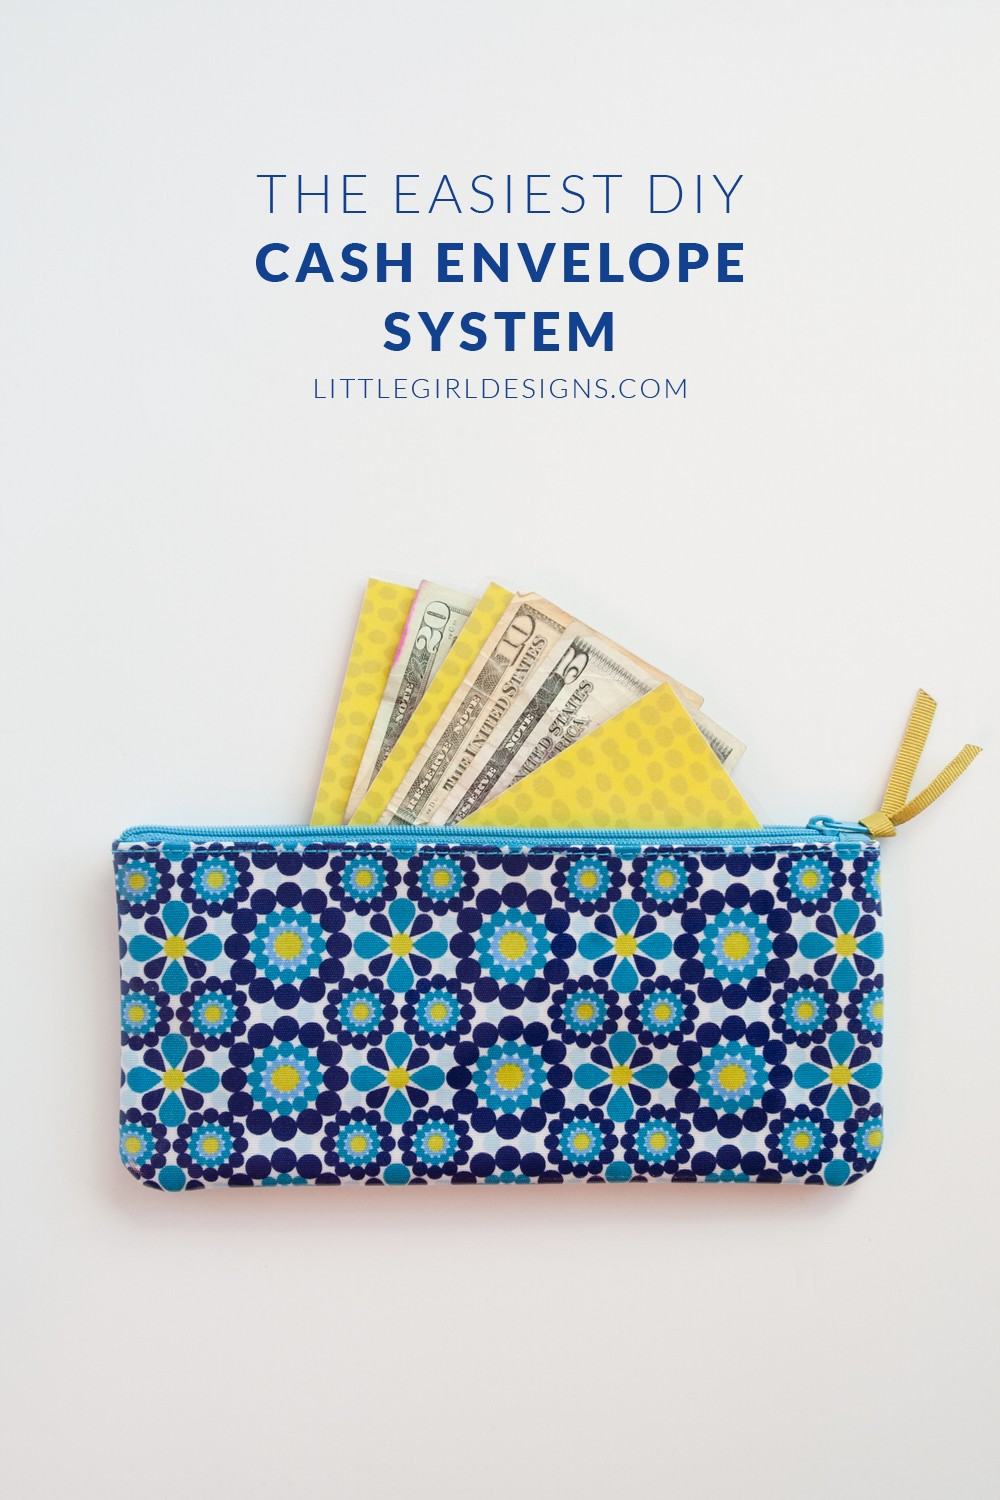 DIY Cash Envelope System - If you're starting out on the journey of using cash envelopes, you might be using several different business sized envelopes to hold your cash. That's fine until the envelopes get worn out or you tire of hauling around 15 envelopes wherever you go. I created this super easy cash envelope system after seeing my mom's system and LOVE it. So easy to make even a non-crafter can do it! :) @littlegirldesigns.com